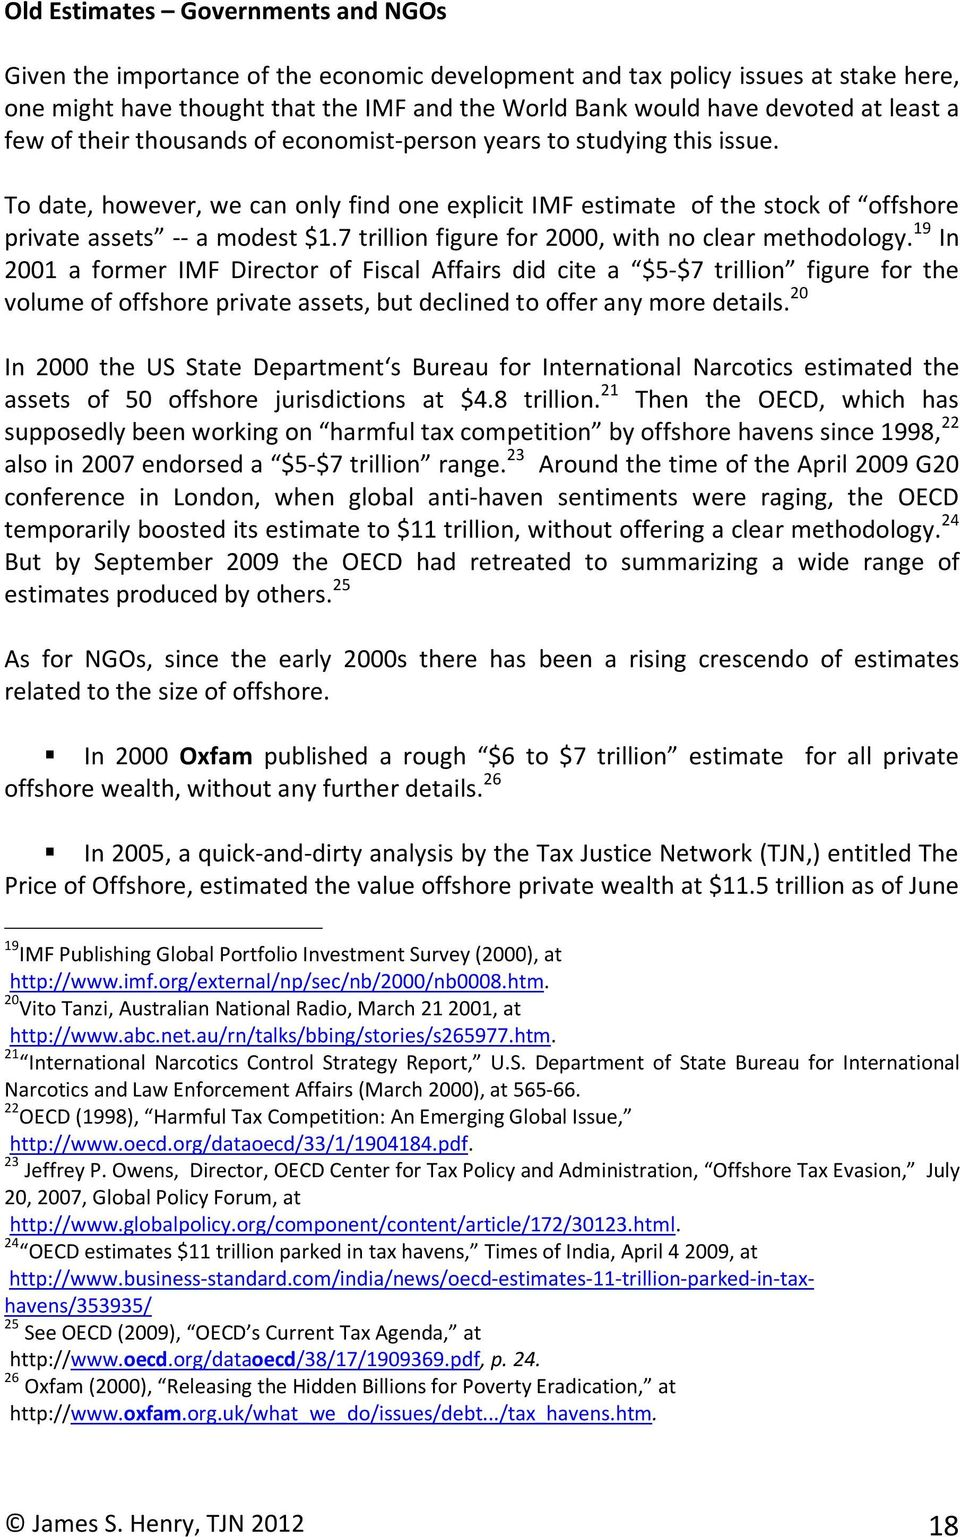 7trillionfigurefor2000,withnoclearmethodology. 19 In 2001 a former IMF Director of Fiscal Affairs did cite a 5S7 trillion figure for the volumeofoffshoreprivateassets,butdeclinedtoofferanymoredetails.